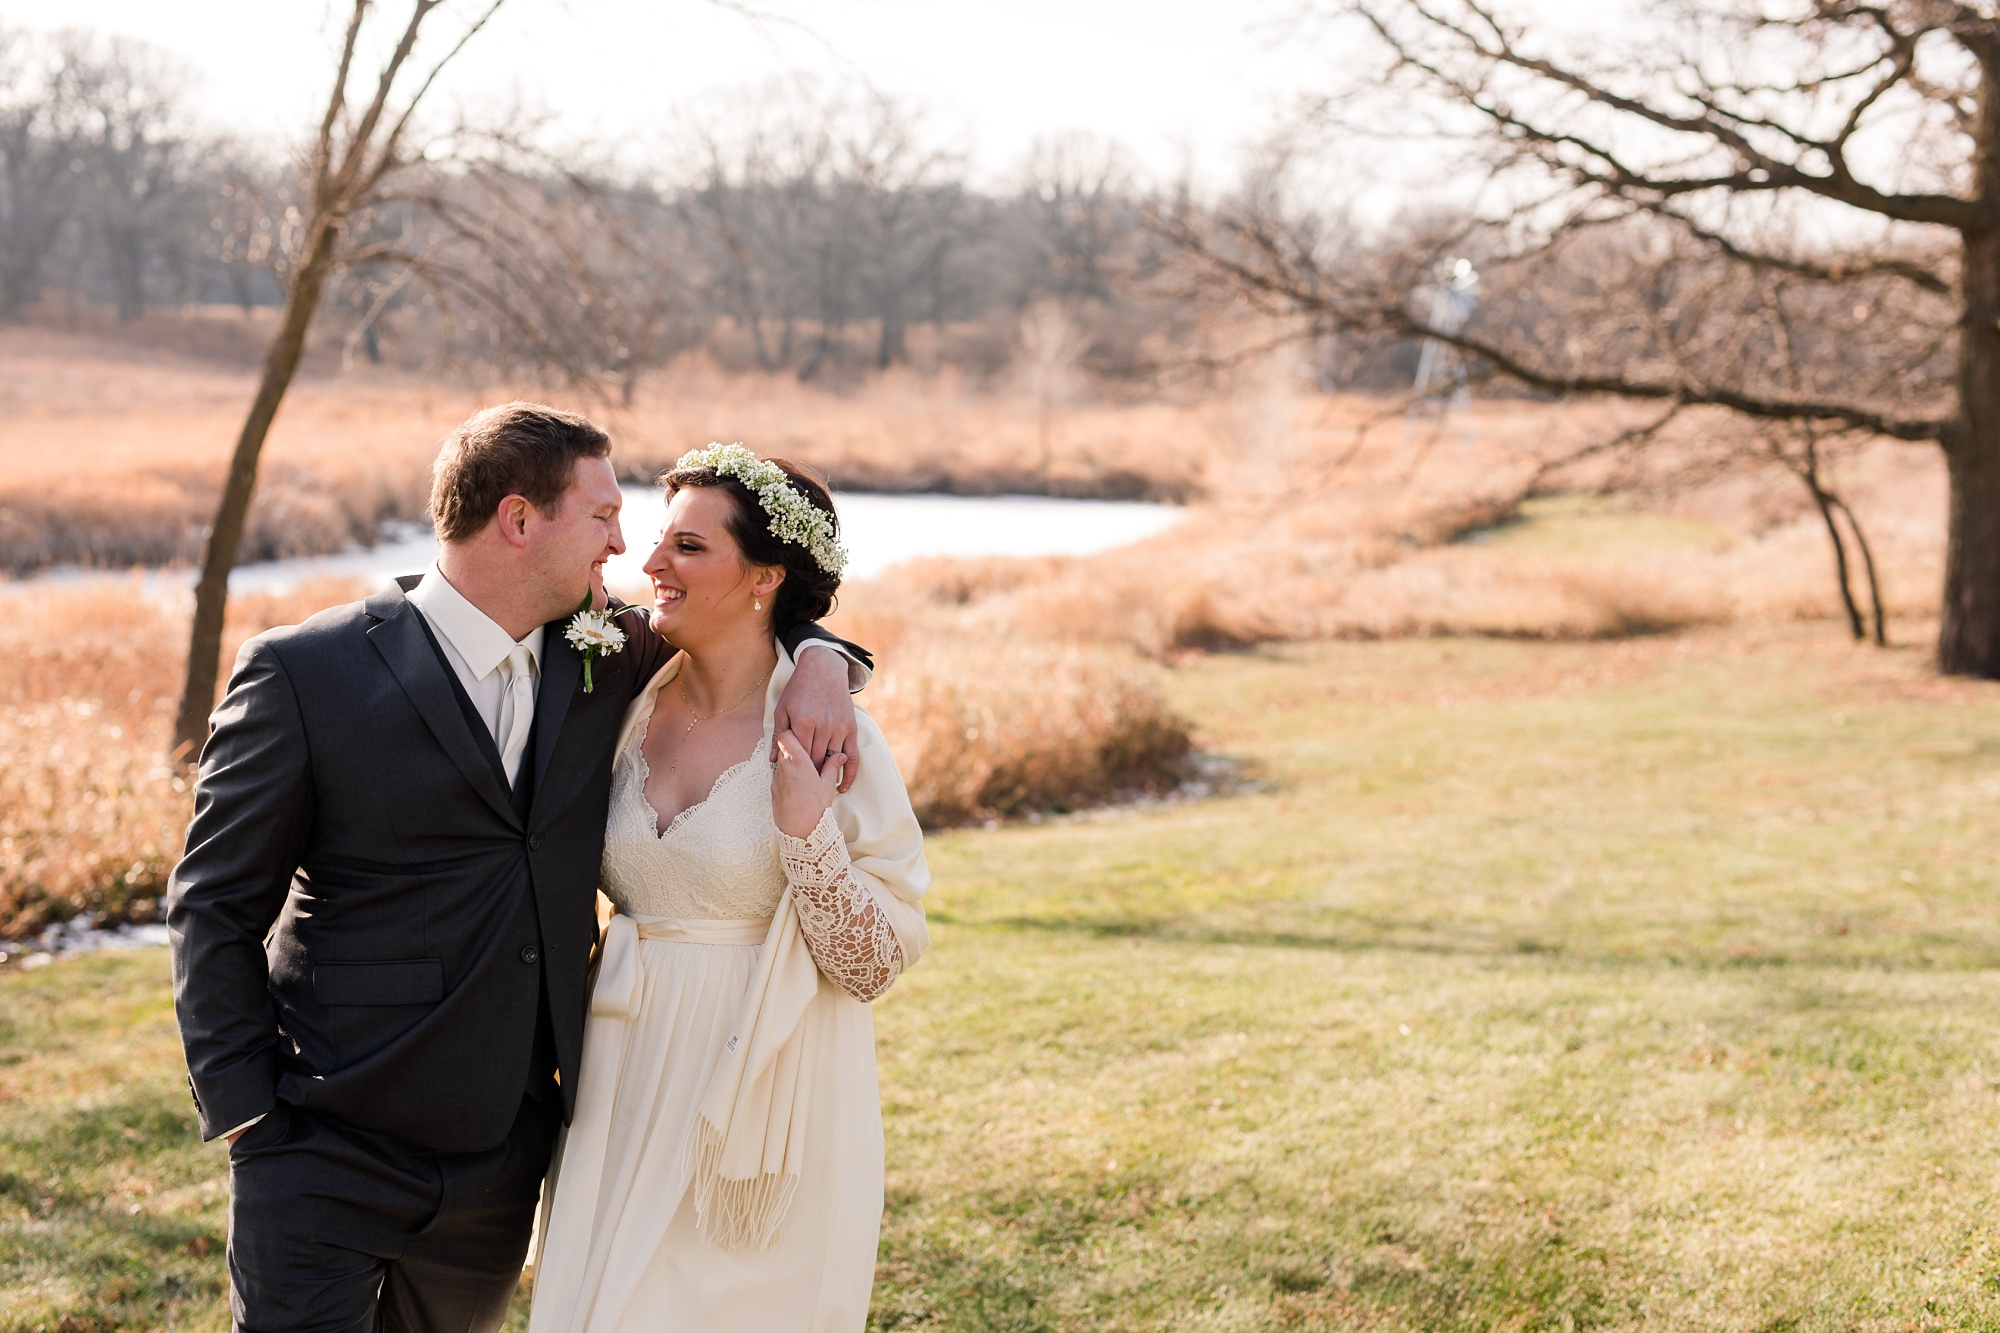 Amber Langerud_Rustic Oaks, MN winter barn wedding_0525.jpg